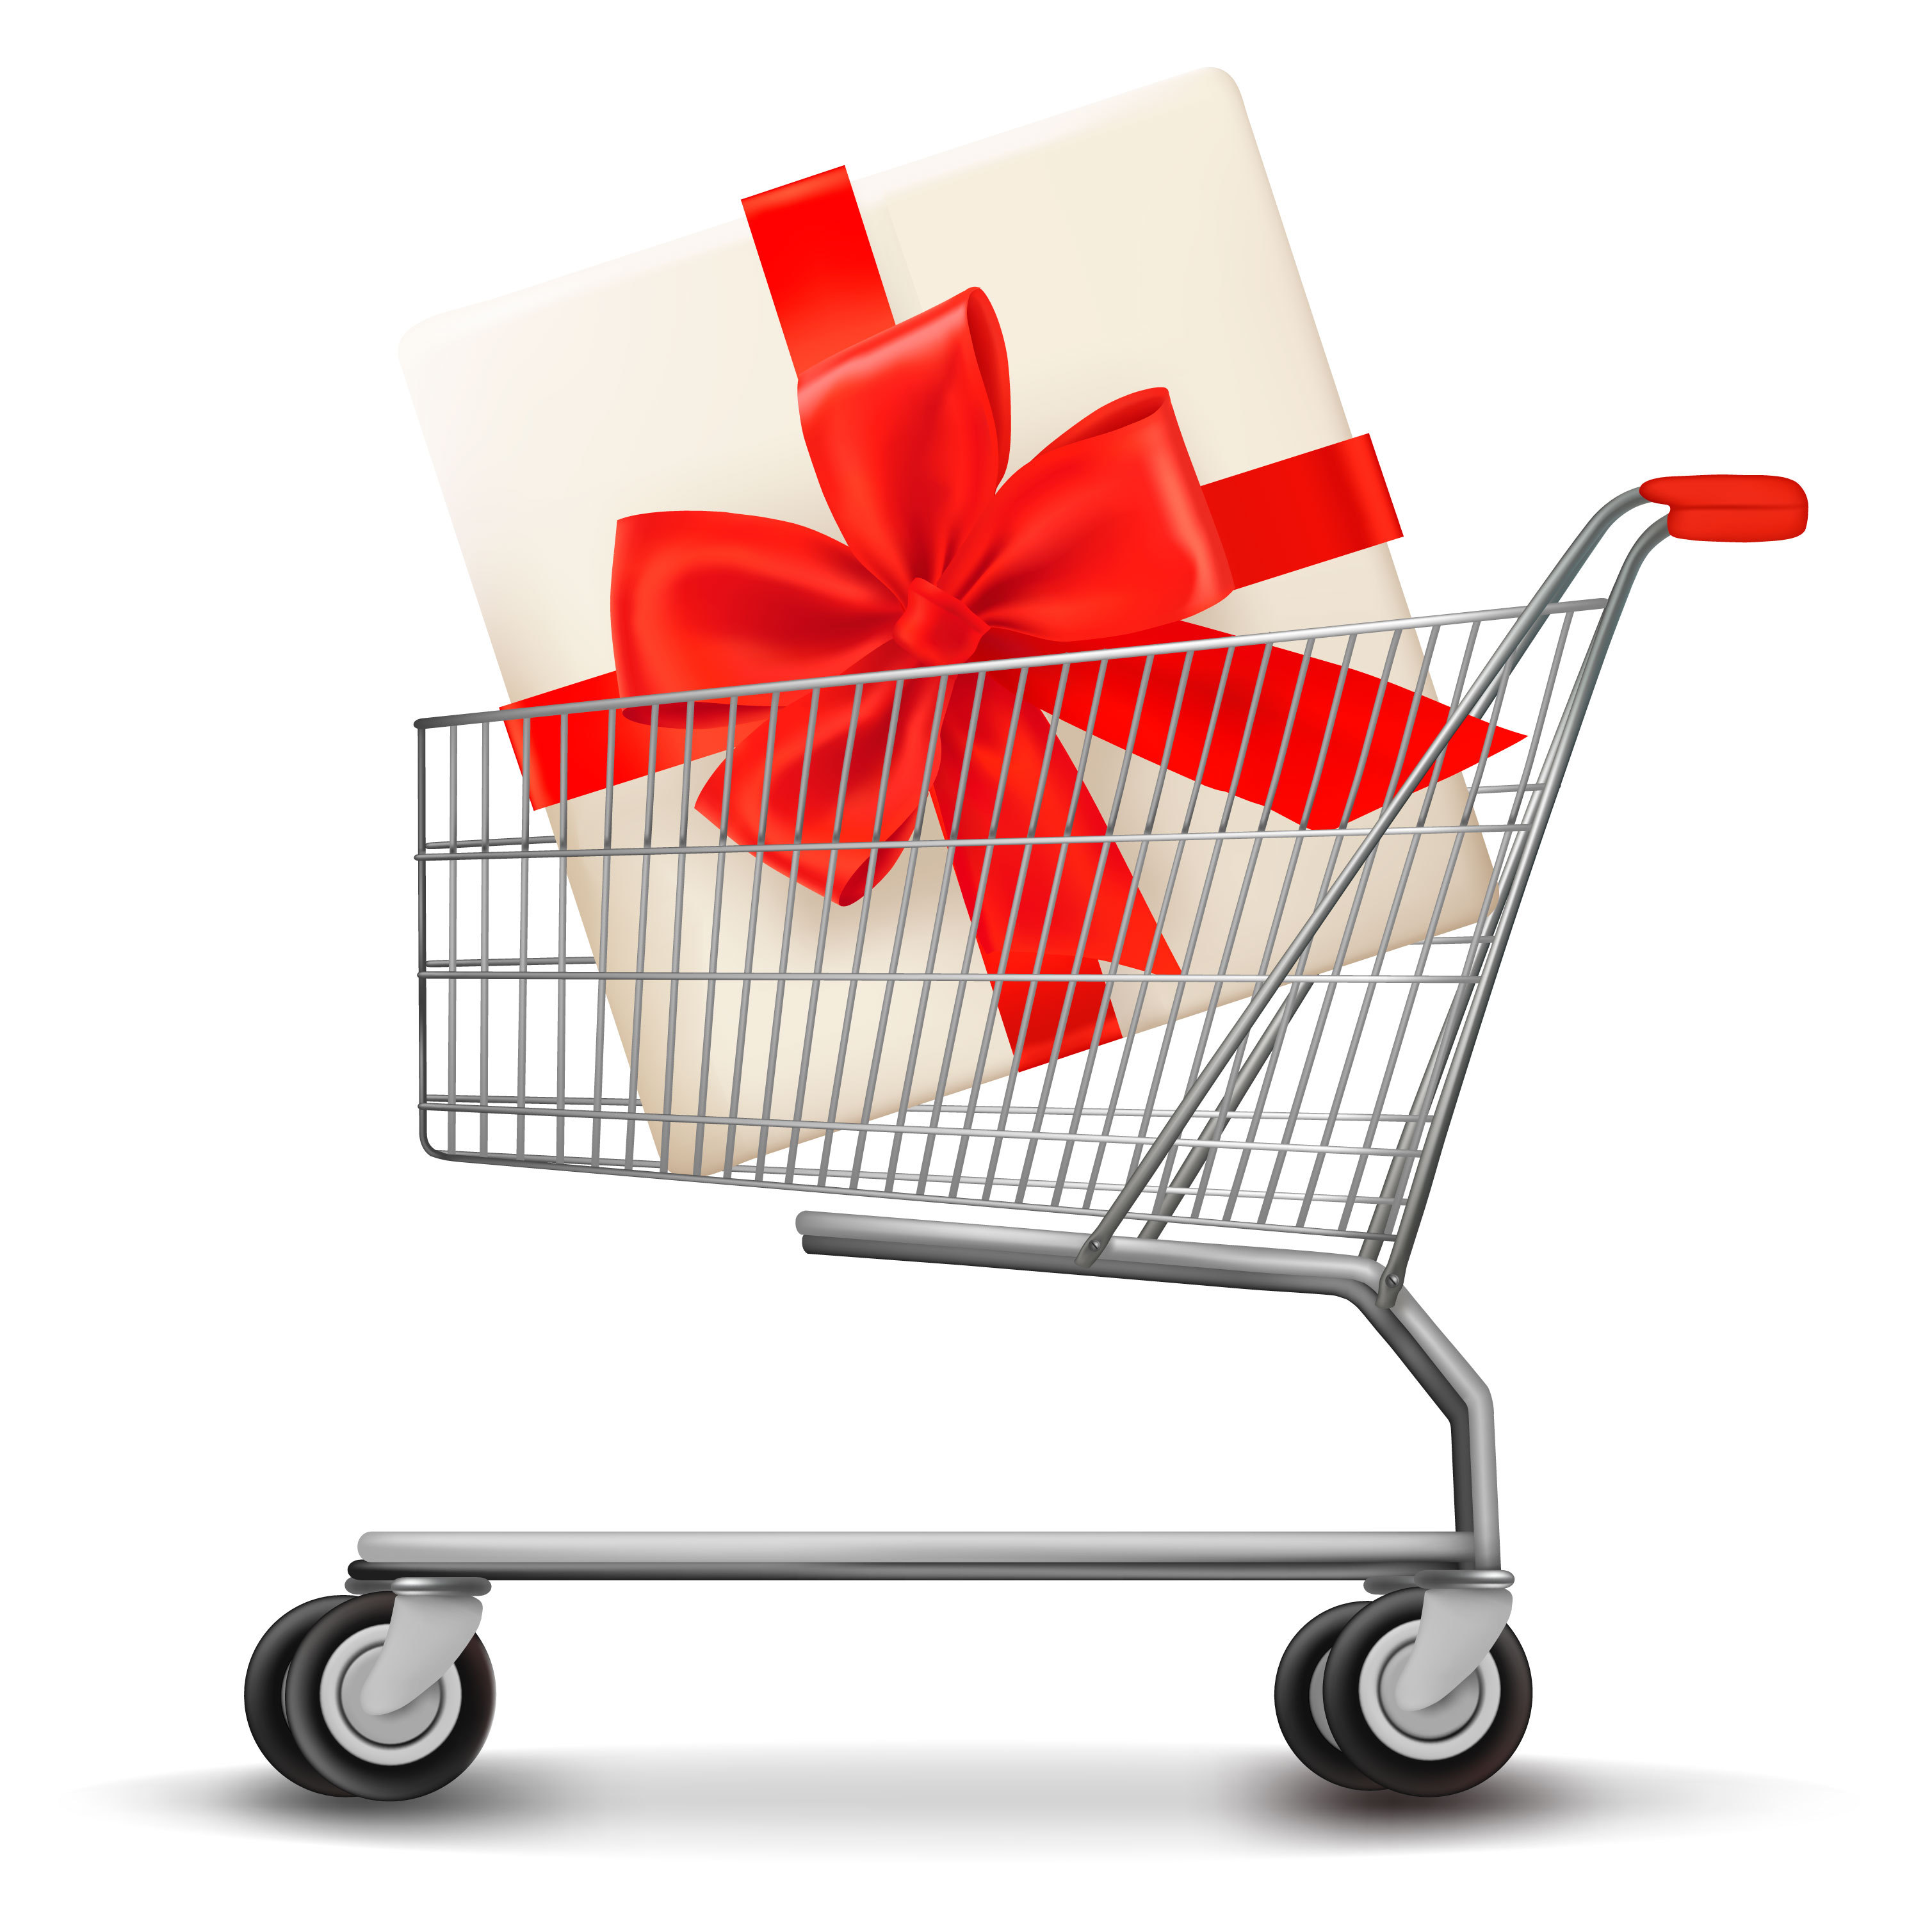 Shopping cart loaded with special deals